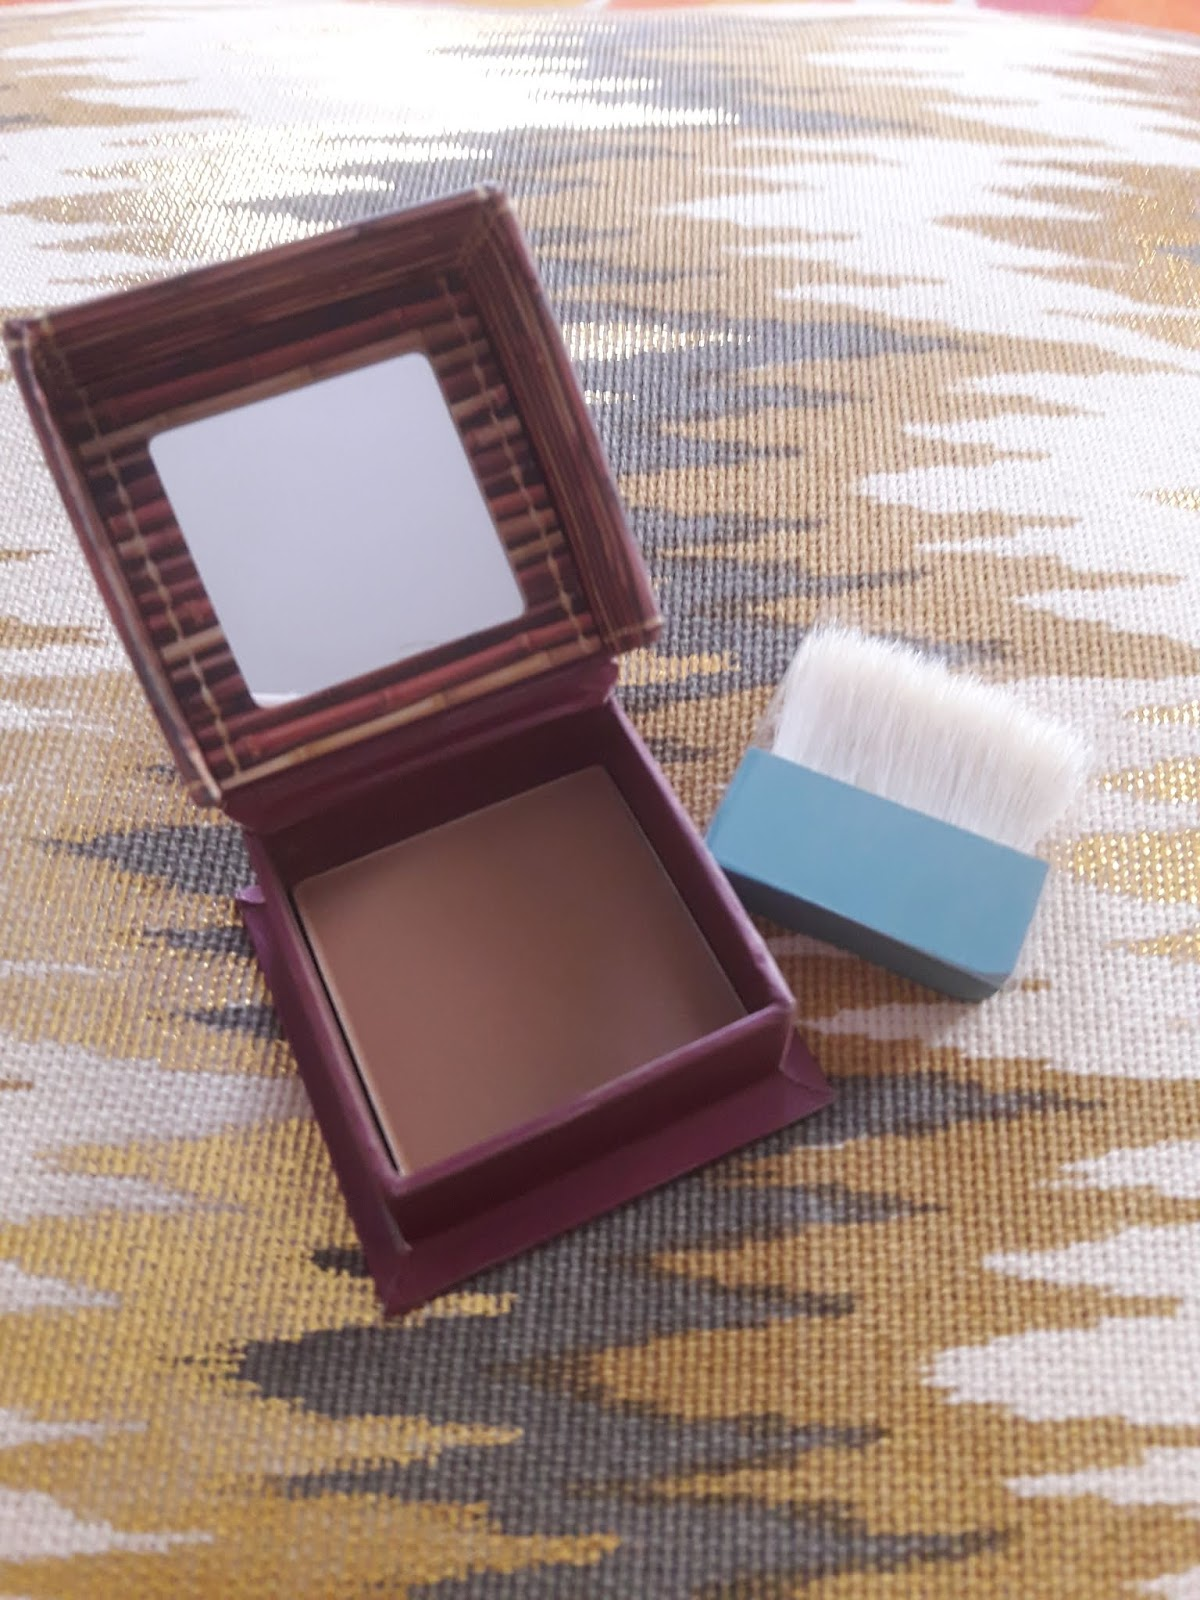 Five Uses of the Benefit Hoola Bronzer